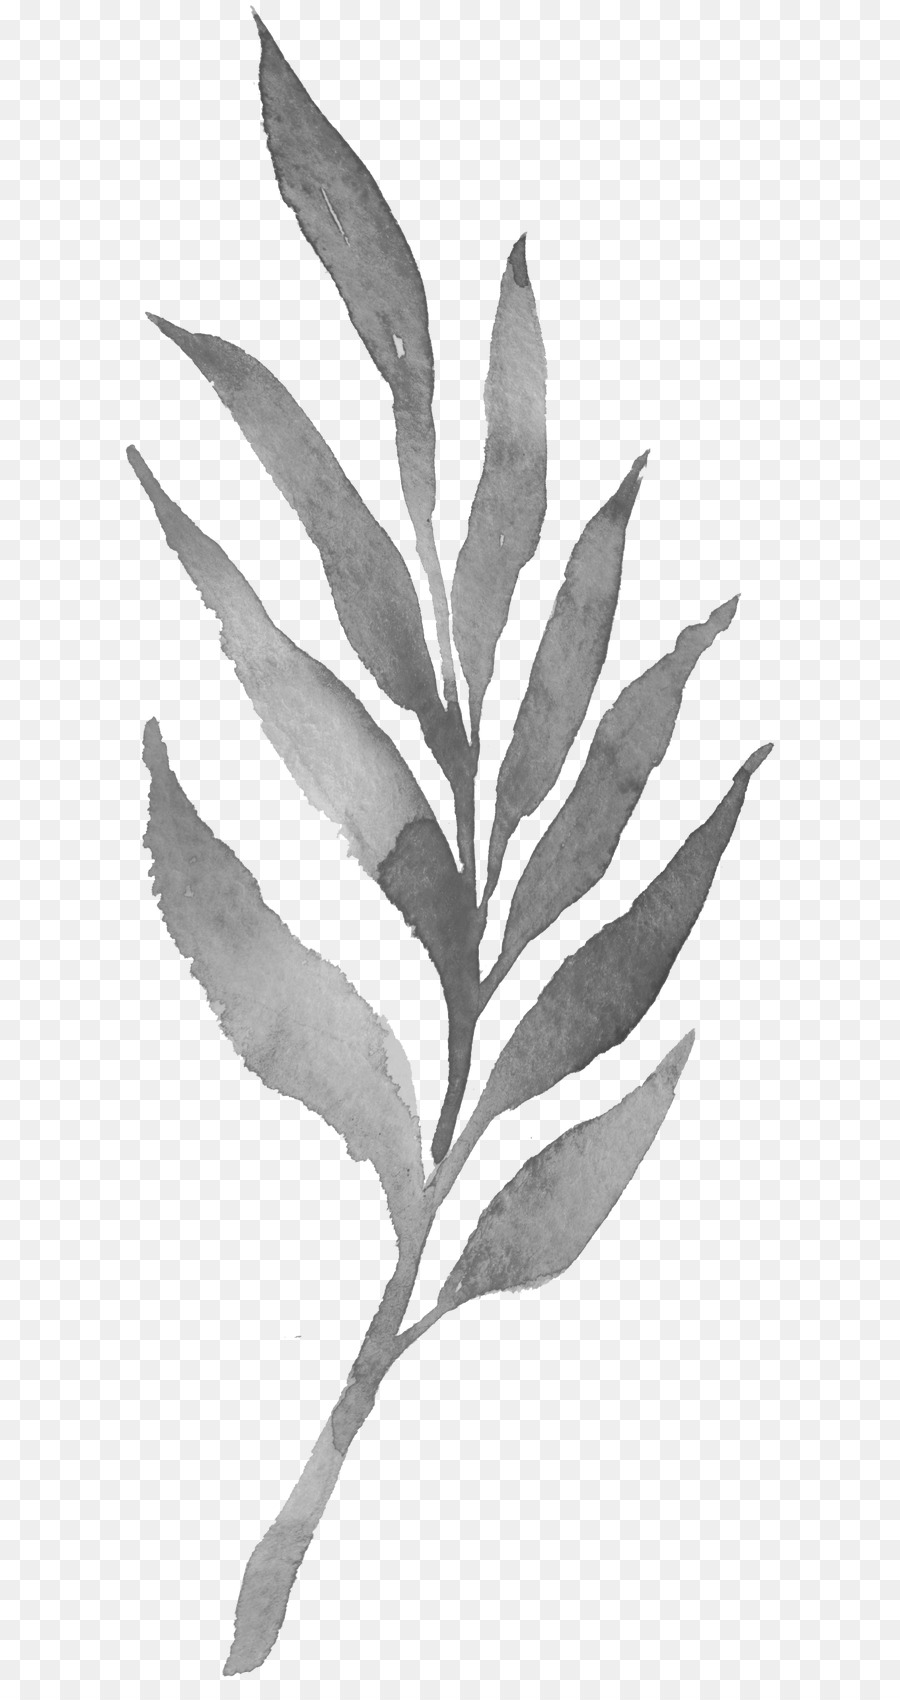 Leaf Black And White Png & Free Leaf Black And White.png Transparent.